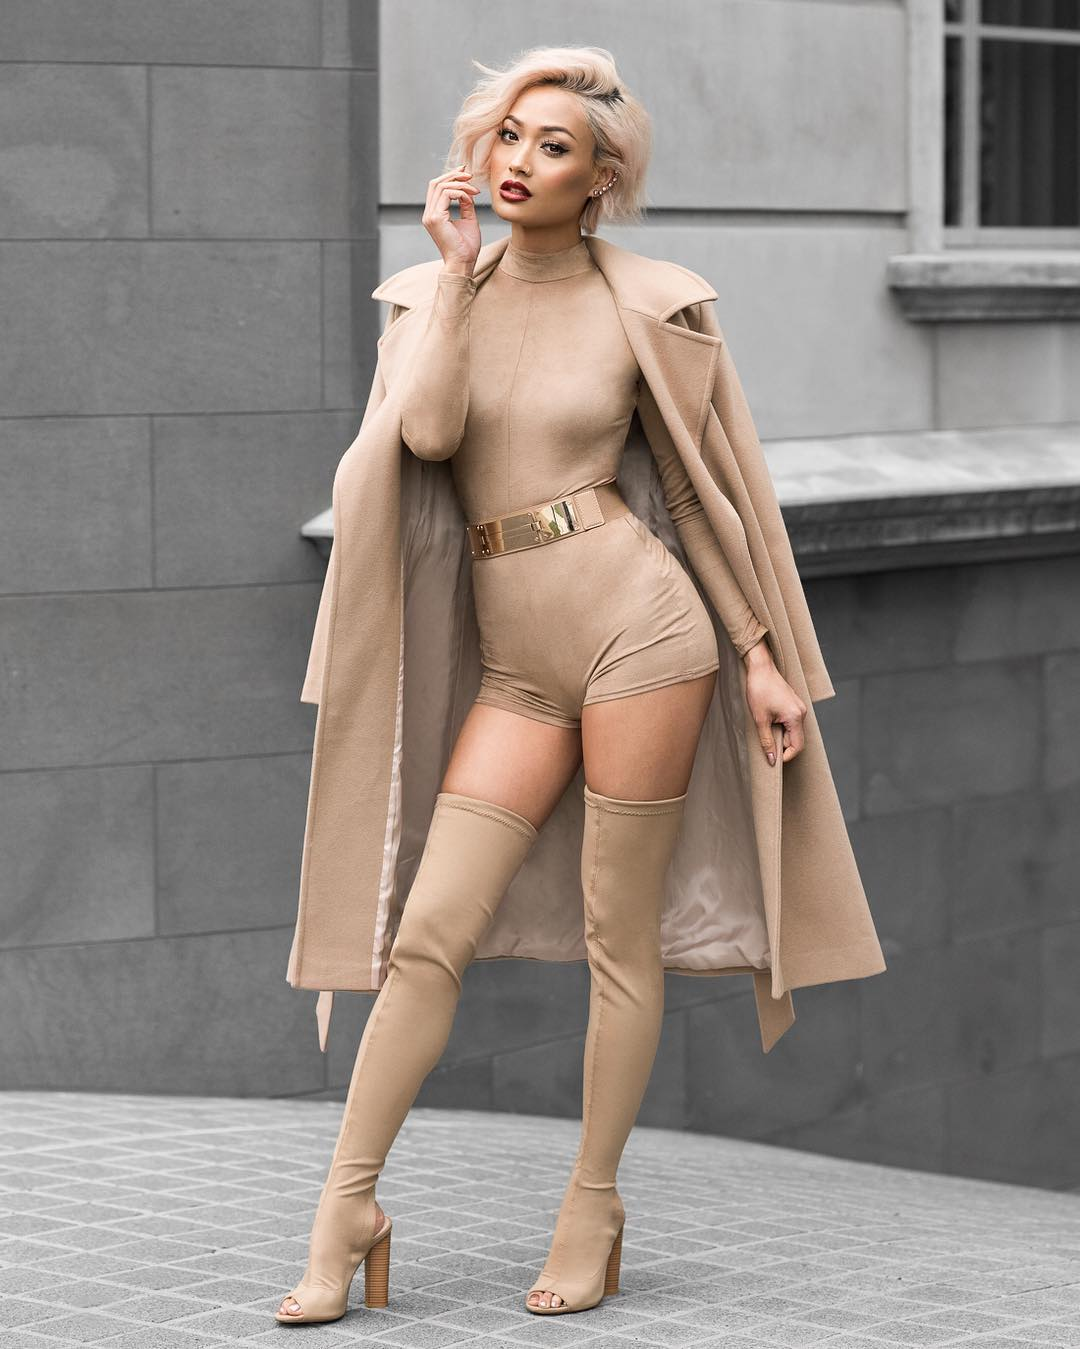 """MICAH GIANNELI on Instagram: """"I'm back! And serving up some nude monochromatic superhero realness ✨ Romper @fashionnova [use MICAH for $off] // Boots @publicdesire 😘"""""""